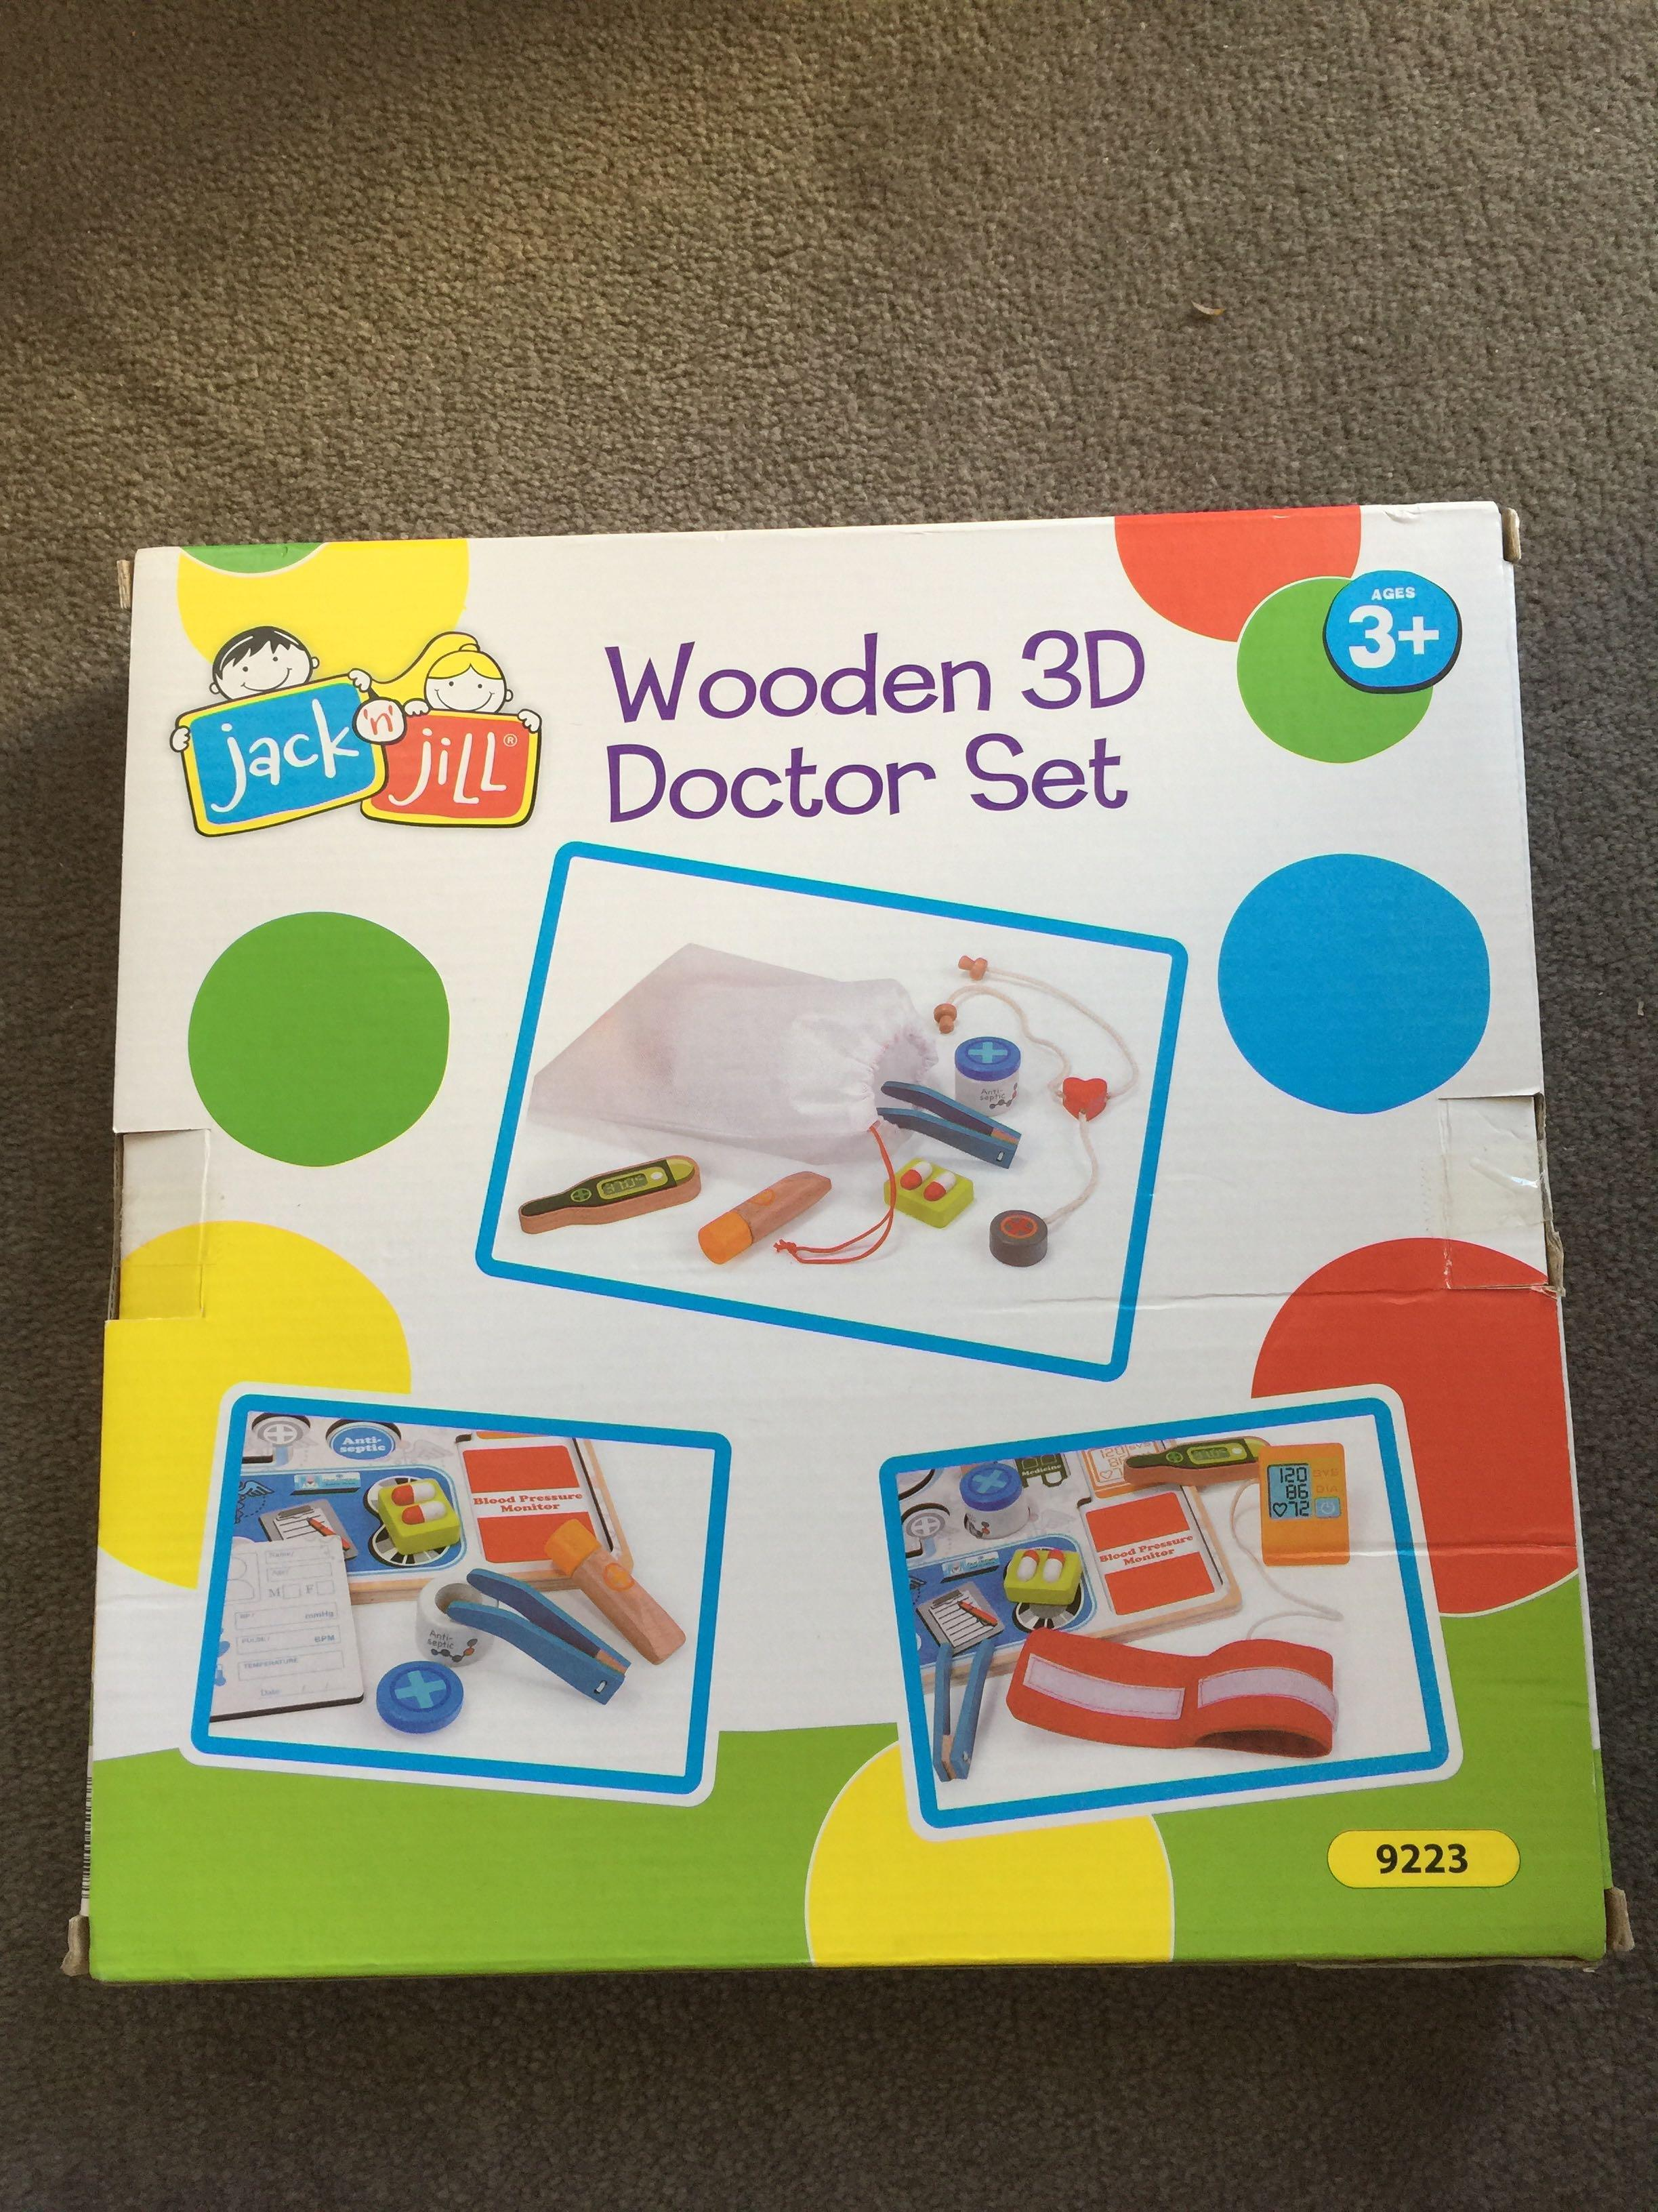 Bnib wooden jack n hill doctor playset toys from sydney